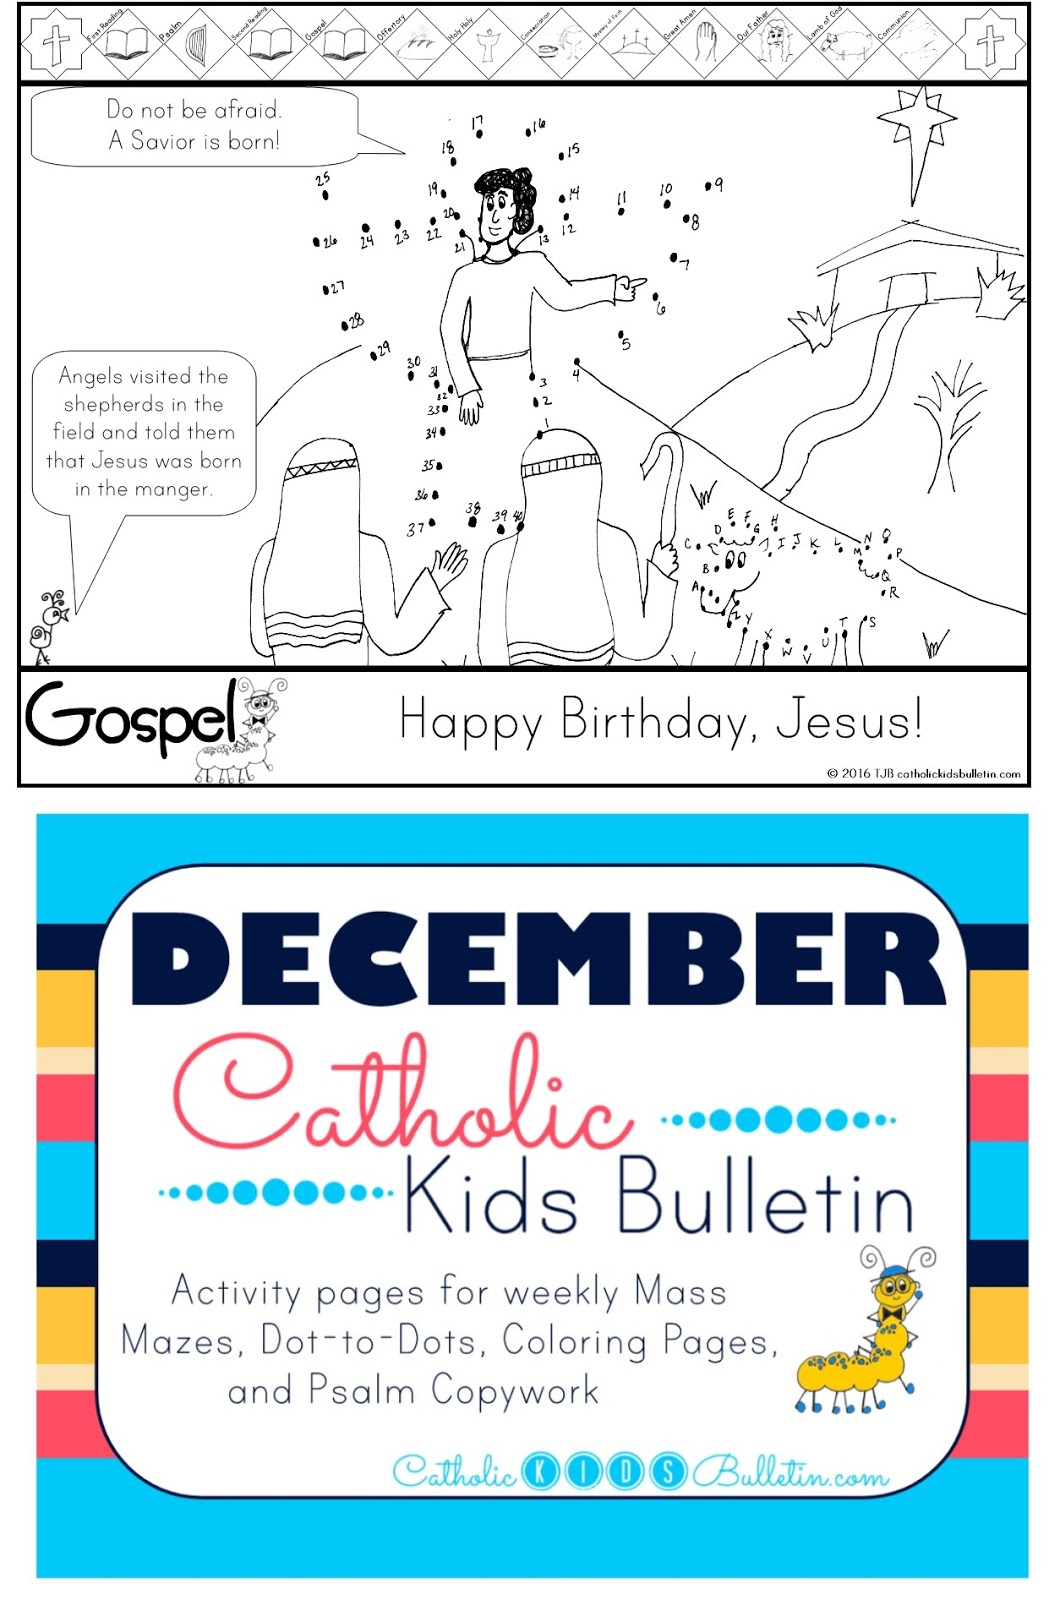 5 December Catholic Kids Bulletin Luke 2.1-14